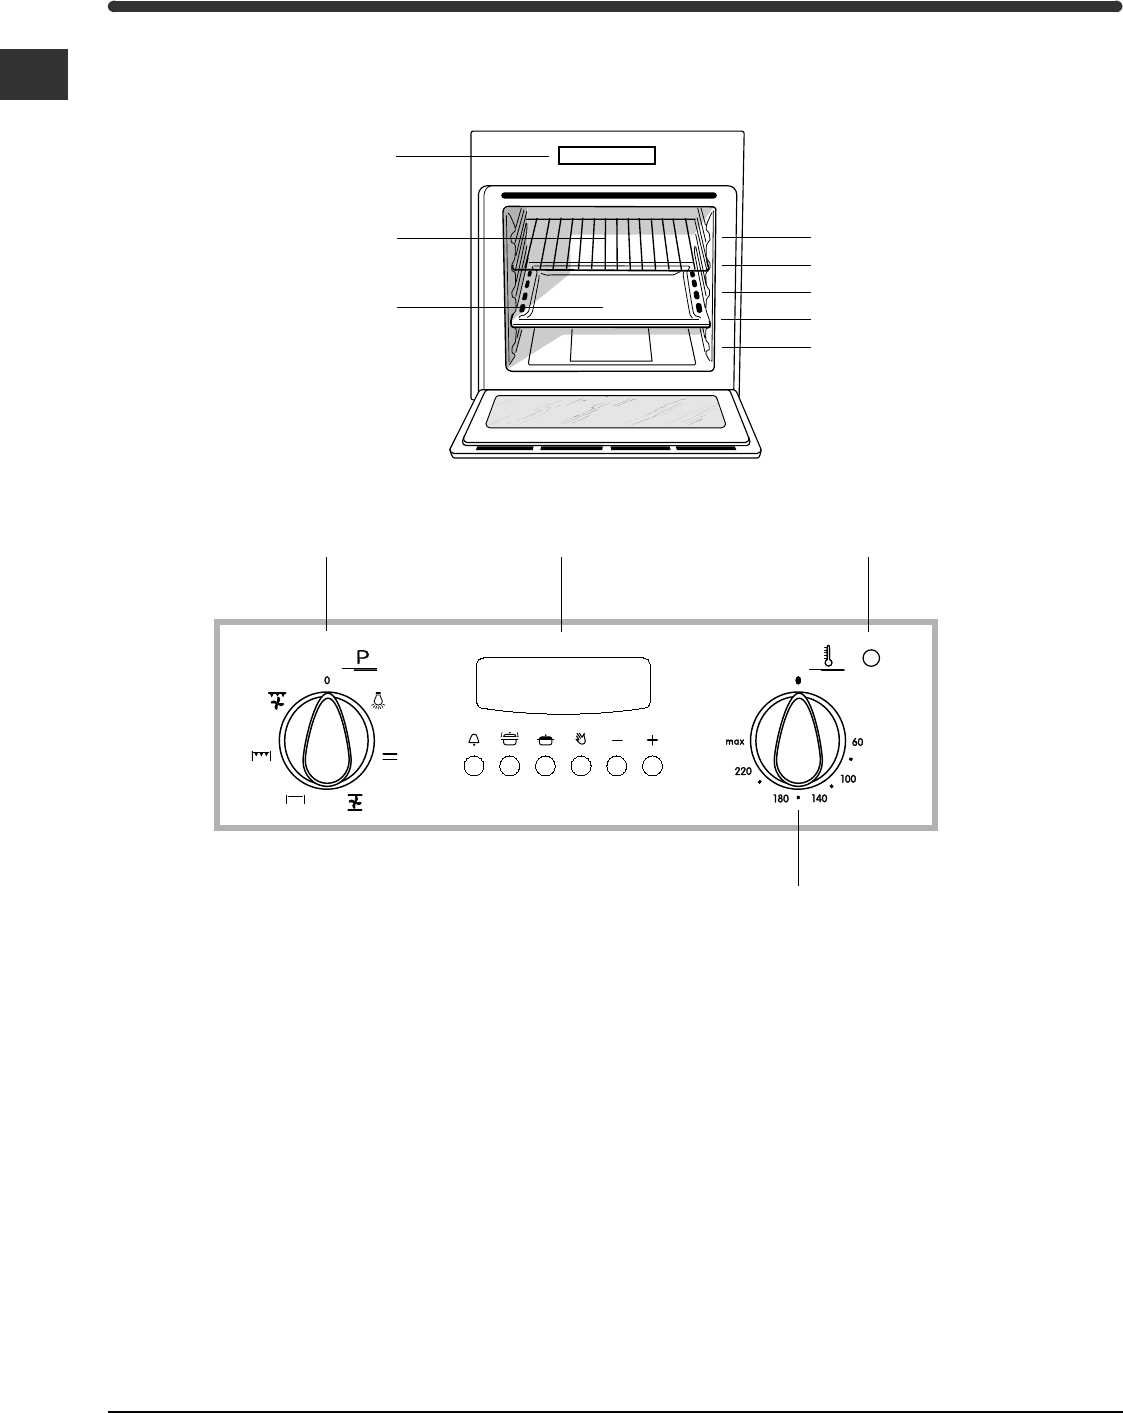 Oven dial symbols image collections symbols and meanings oven dial symbols images symbols and meanings oven dial symbols choice image symbols and meanings oven biocorpaavc Choice Image